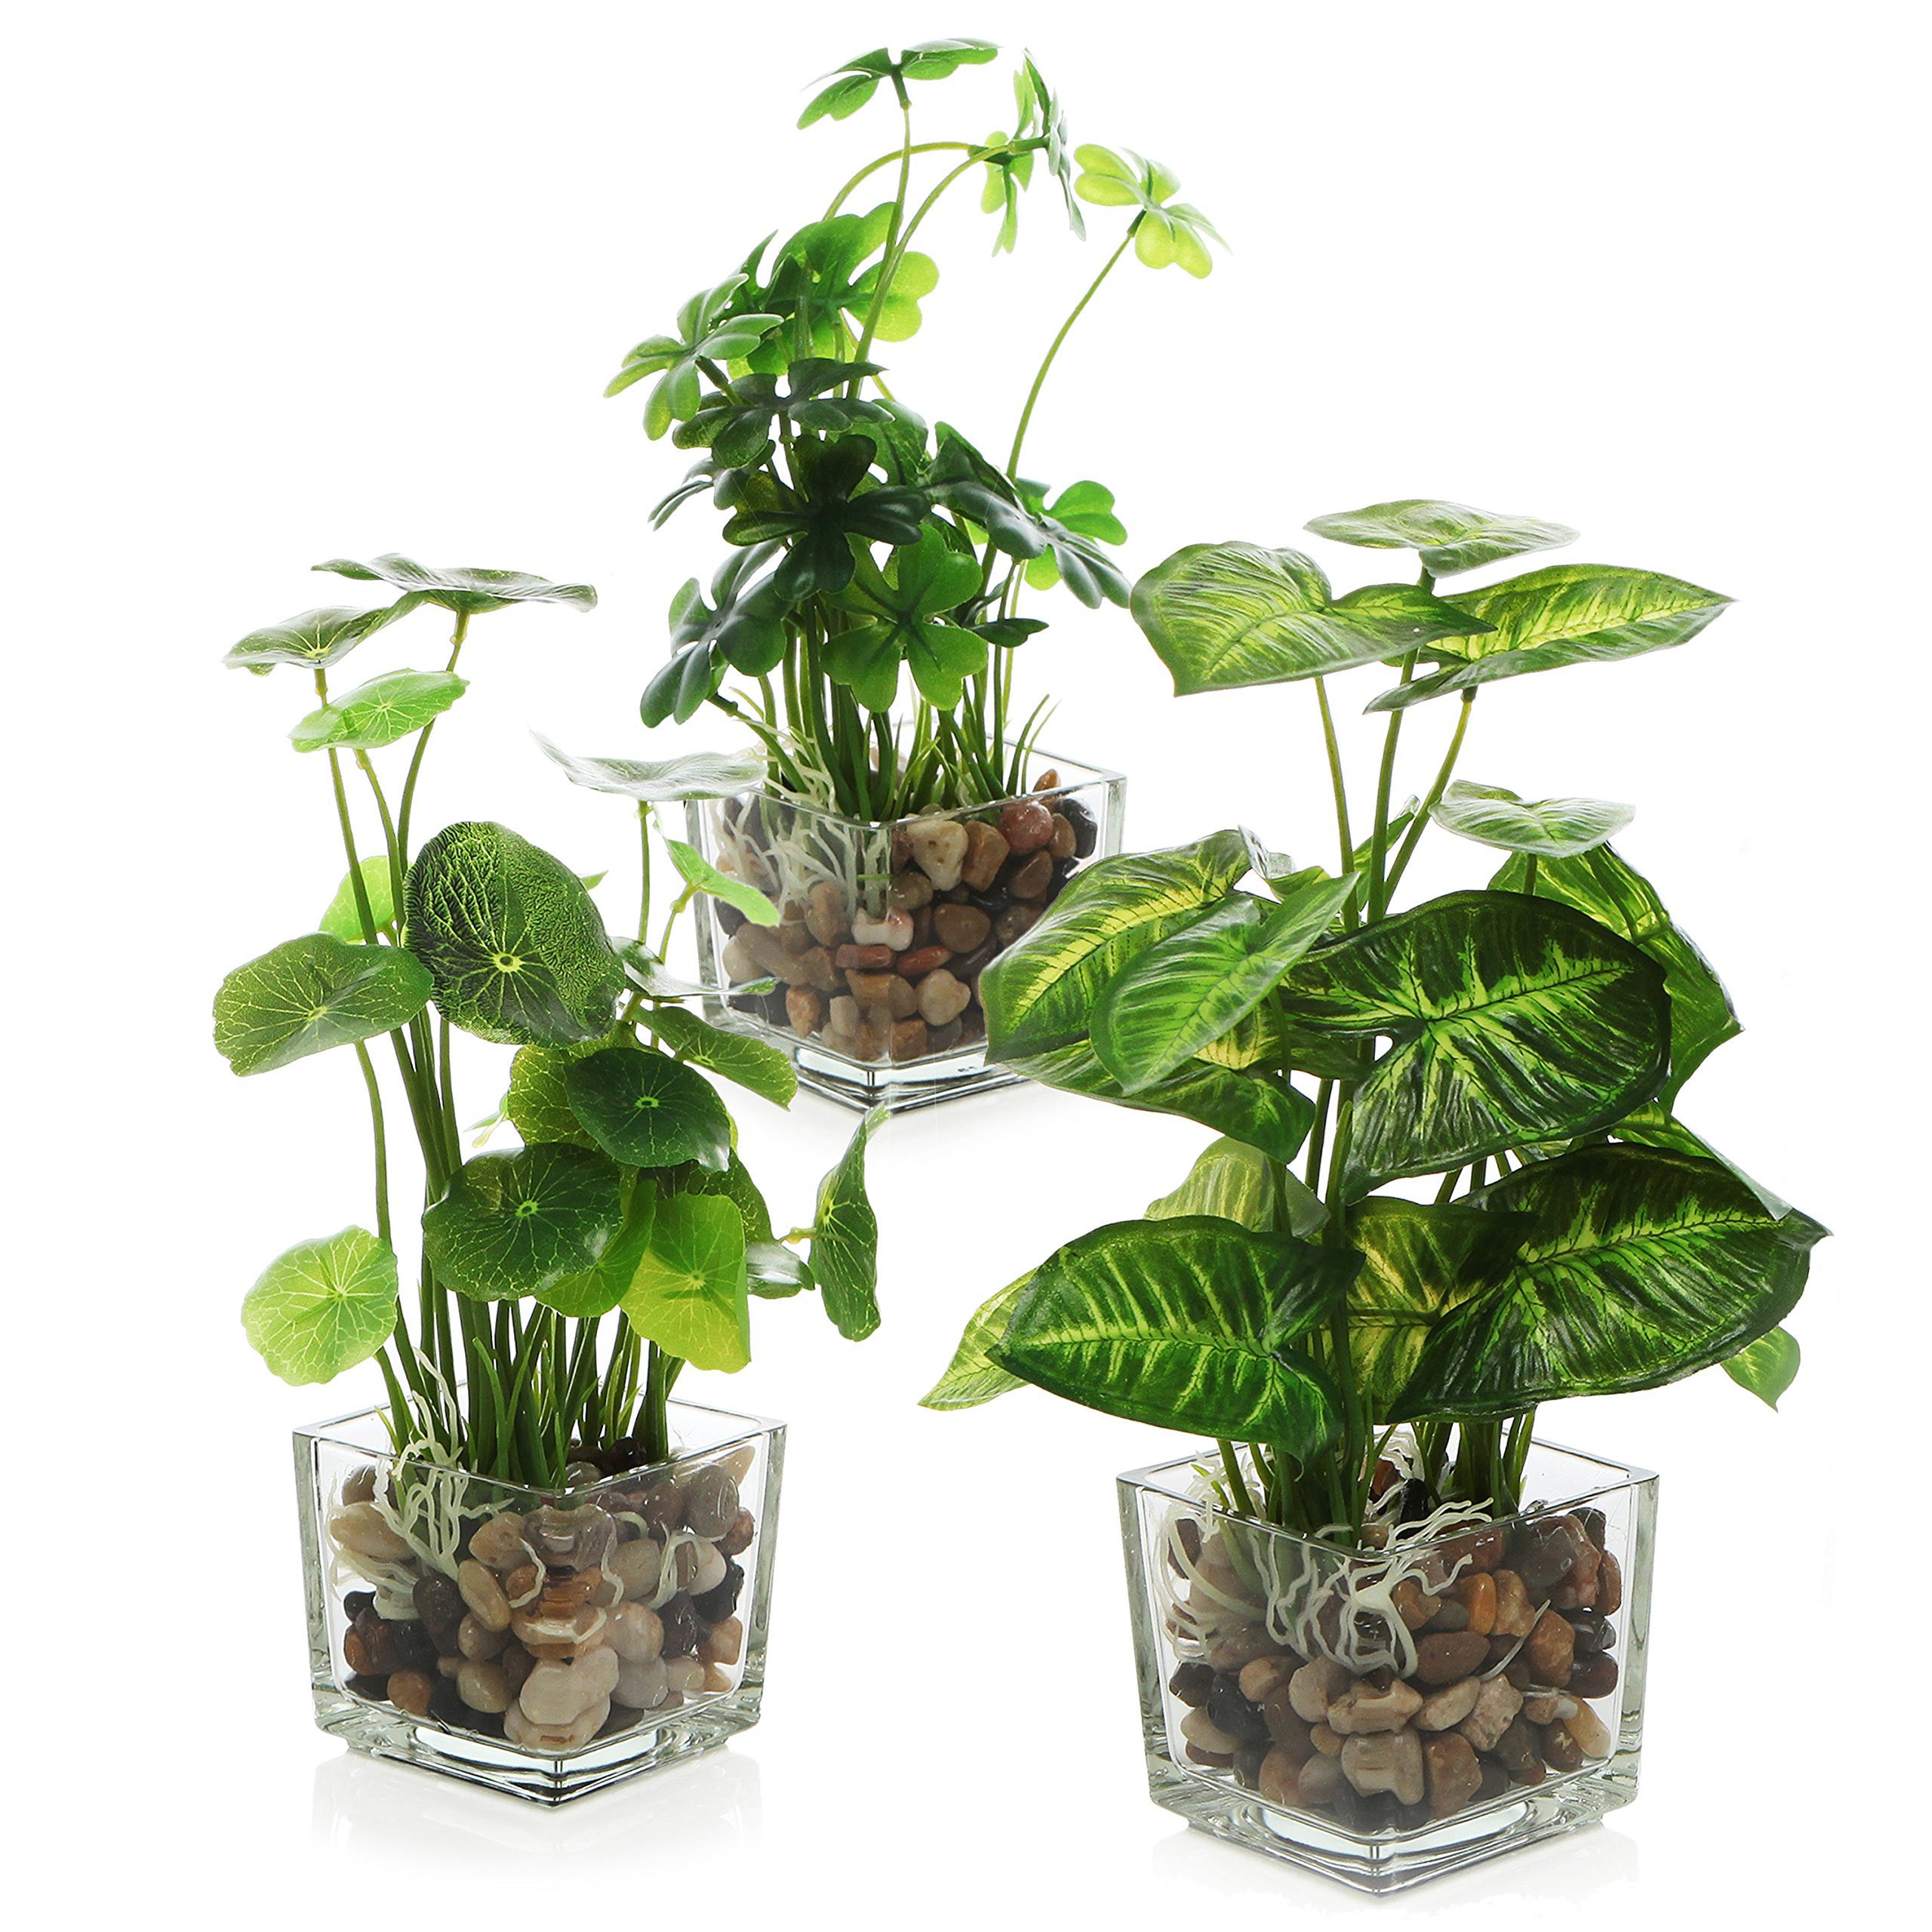 MyGift Set of 3 Artificial Plants, Faux Tabletop Greenery w/ Clear Glass Pots by MyGift